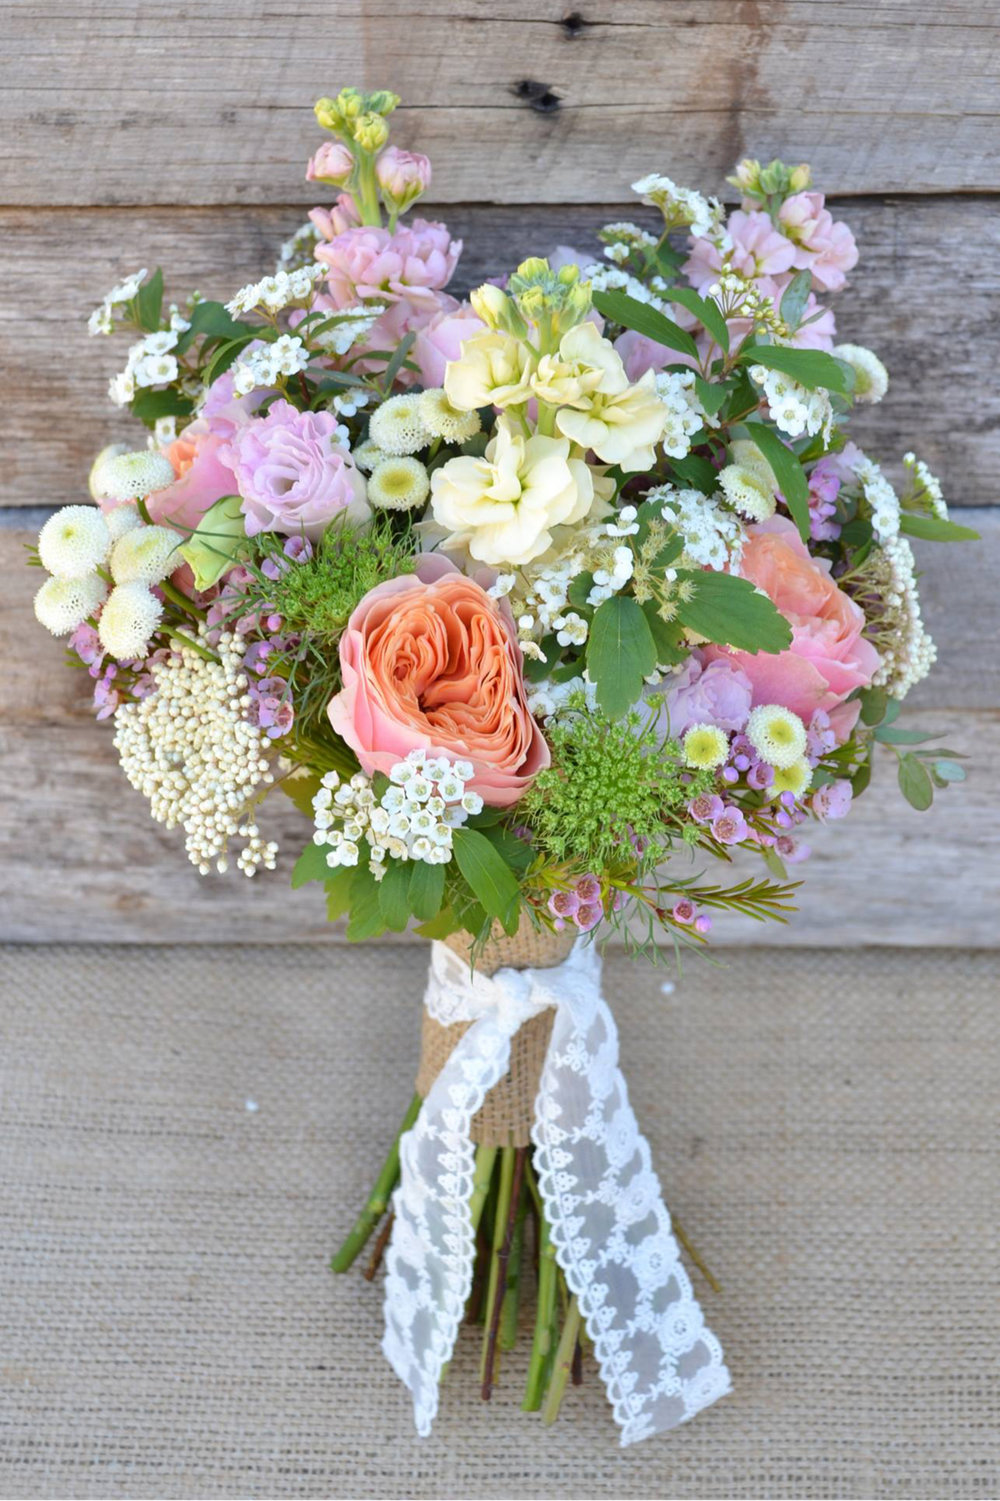 Clutch bouquet - Unbridely